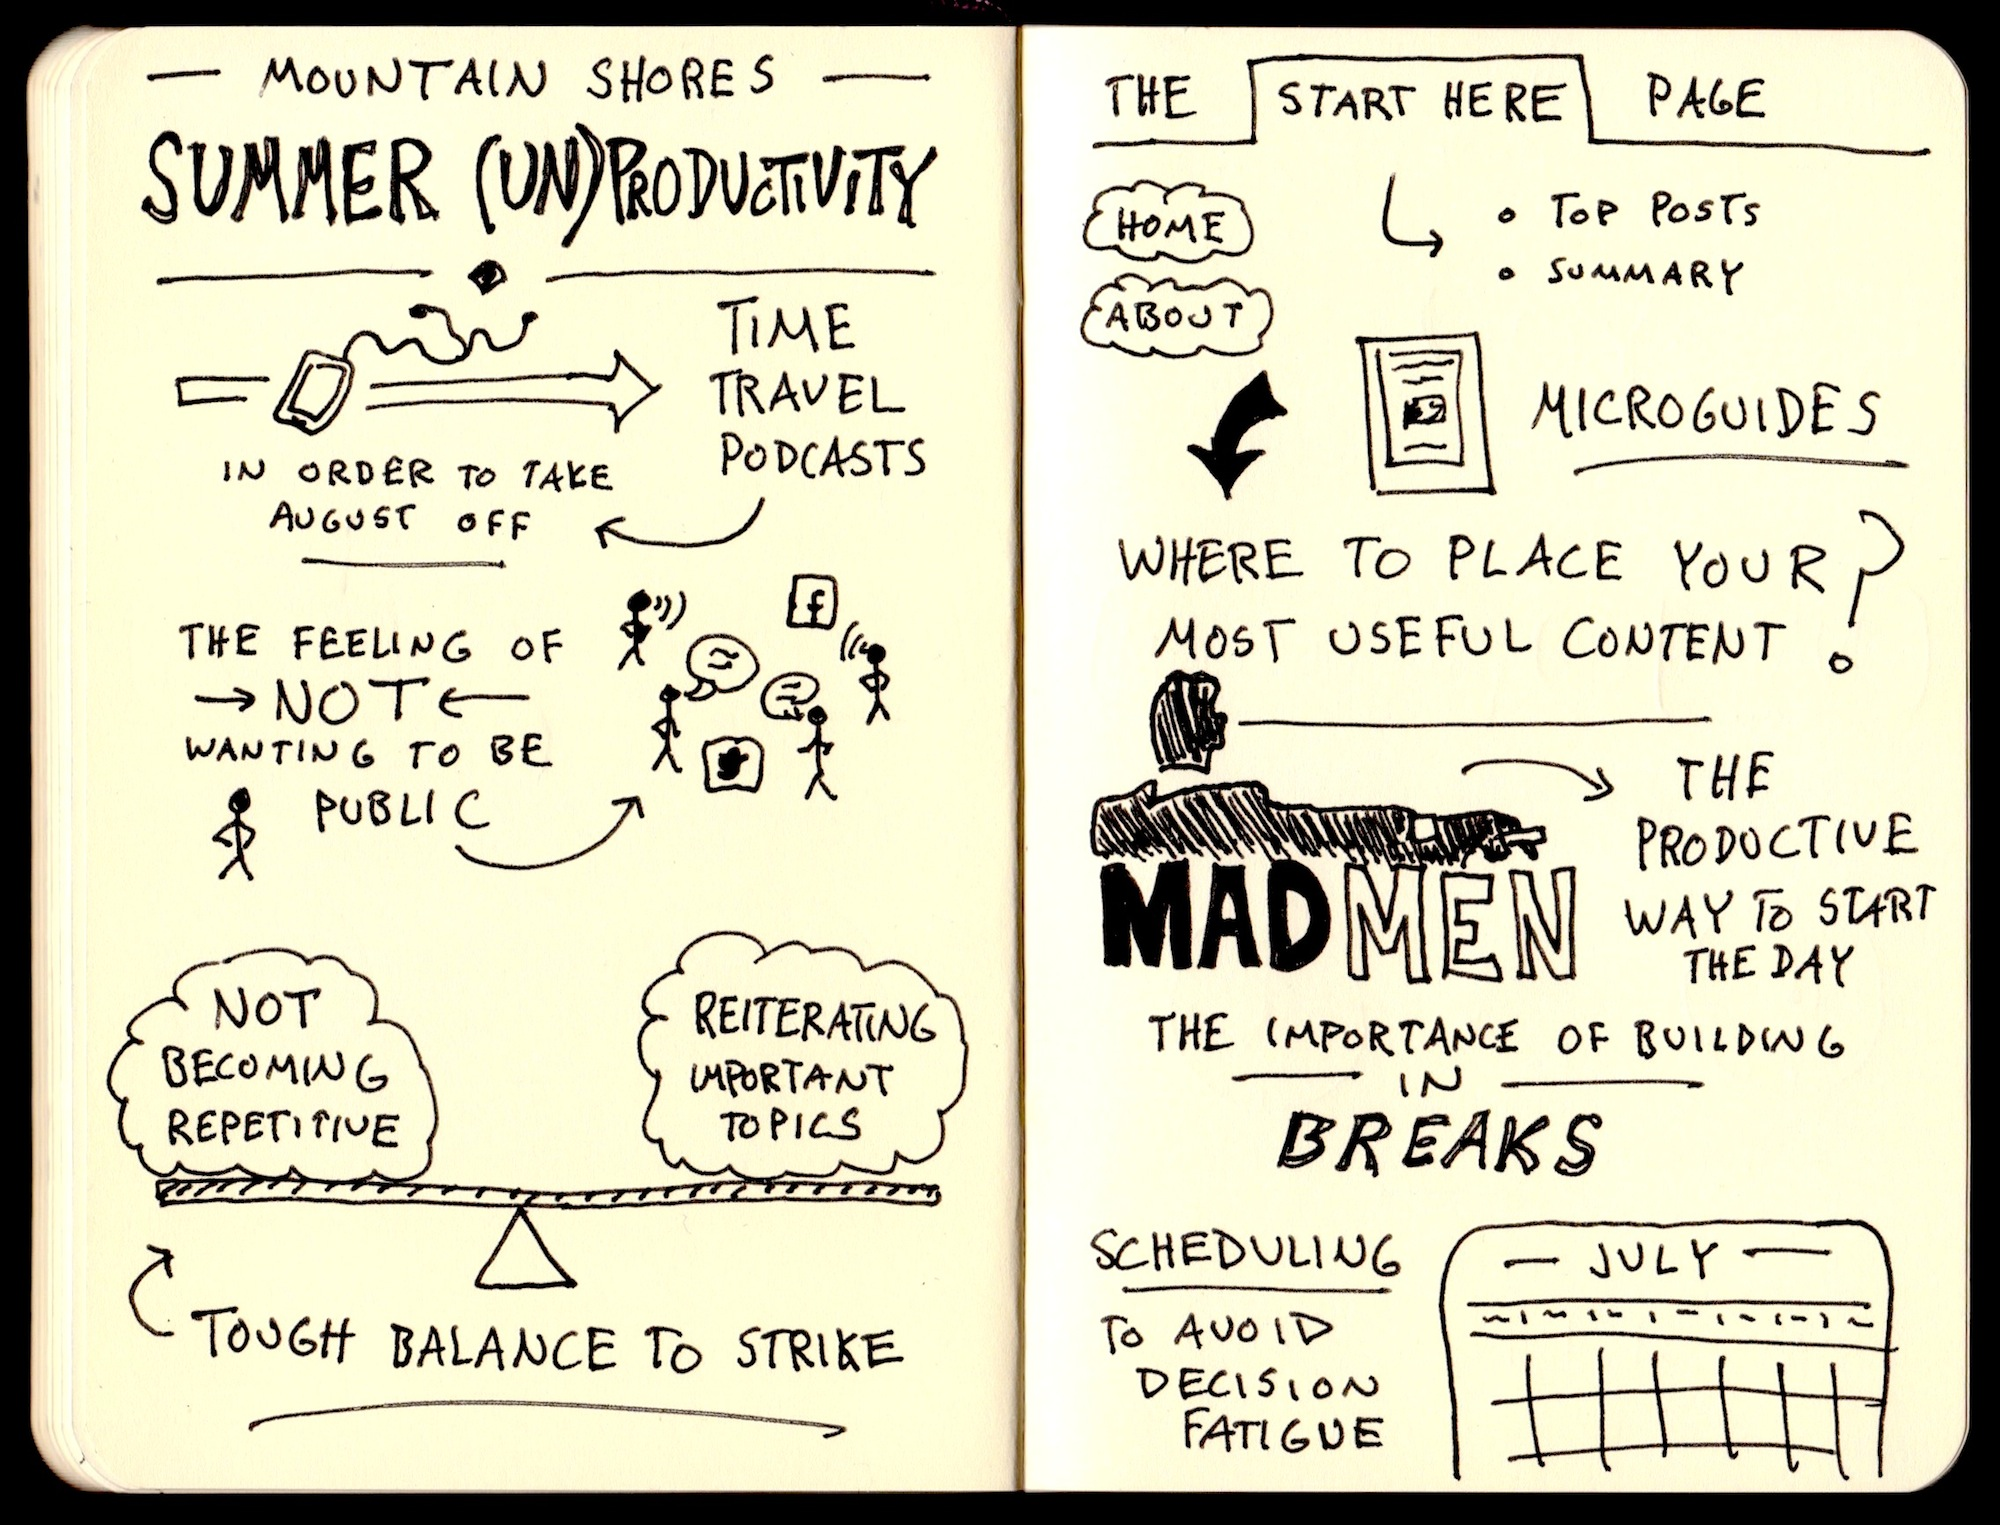 Mountain Shores Summer UnProductivity Podcast Sketchnotes (1) - Doug Neill - Fabian Kruse, Milo McLoughlin, Michael Nobbs - start page, mad men, not wanting to be public, scheduling breaks, decision fatigue